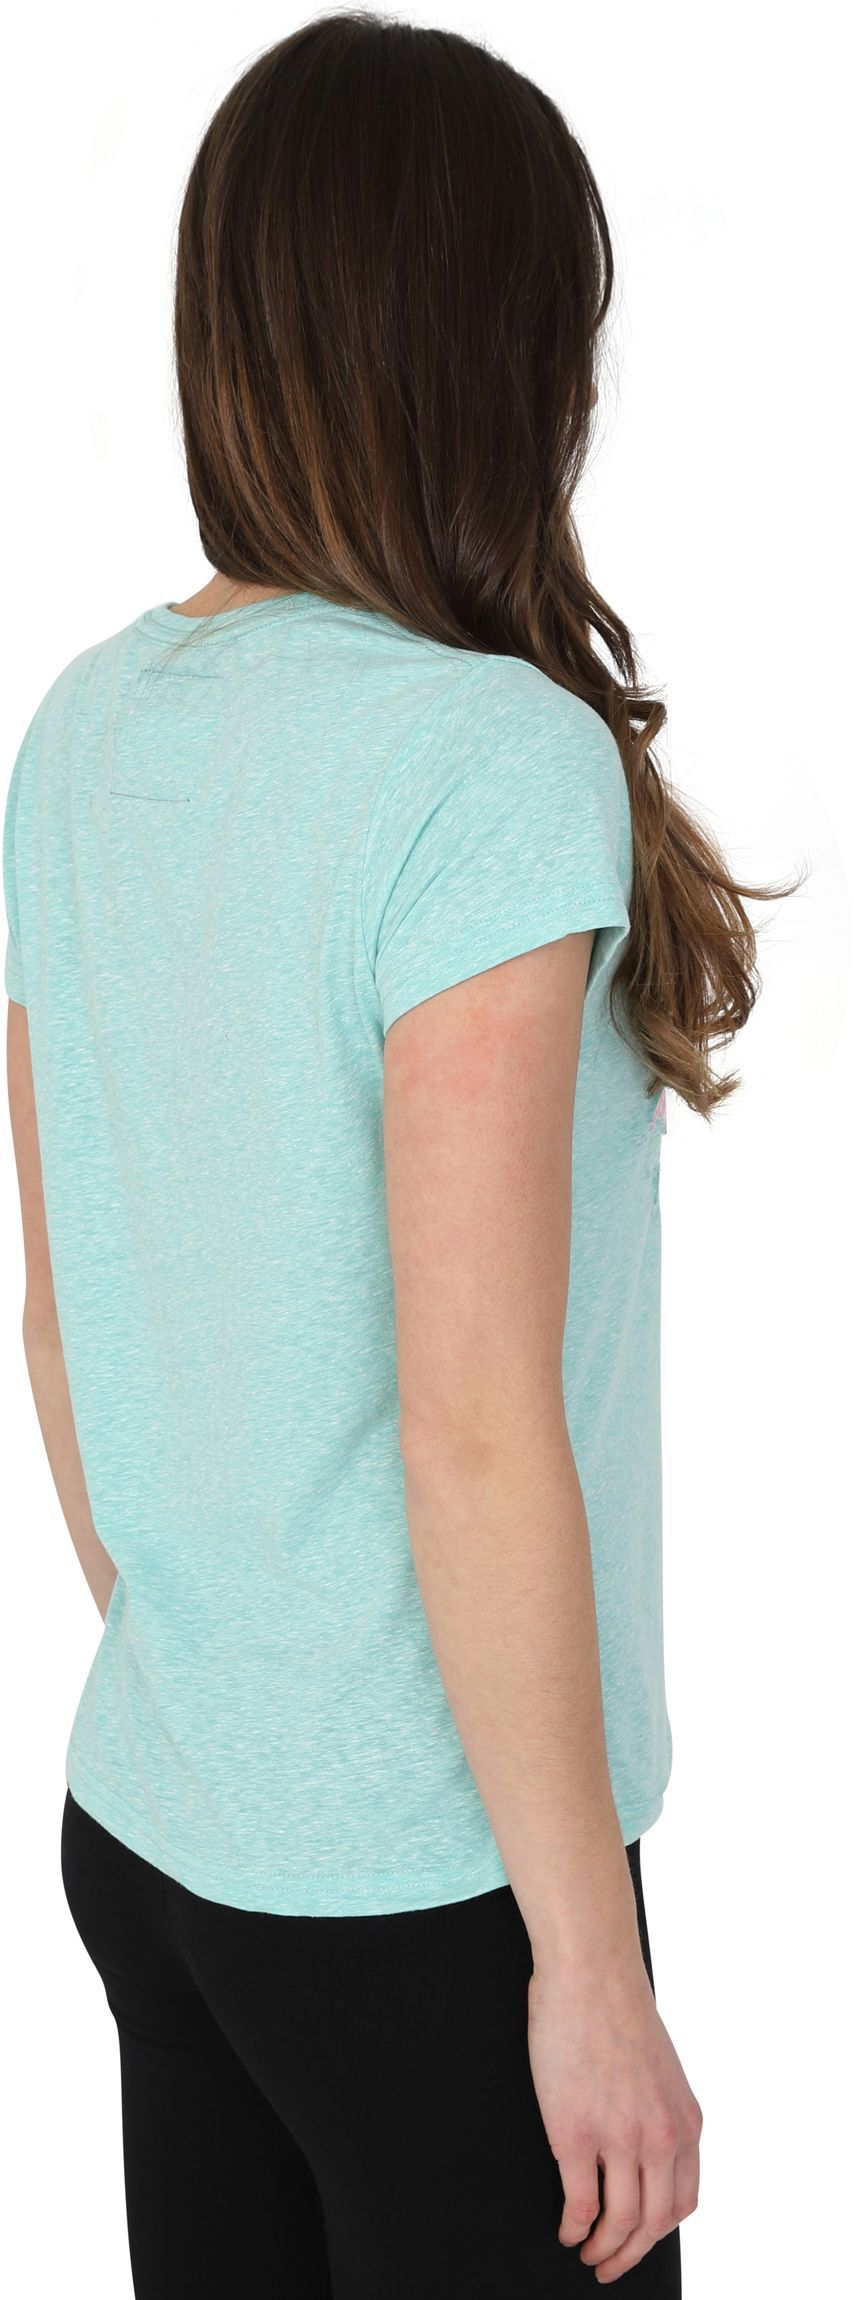 Superdry-T-Shirt-Women-039-s-Tops-Assorted-Styles thumbnail 35